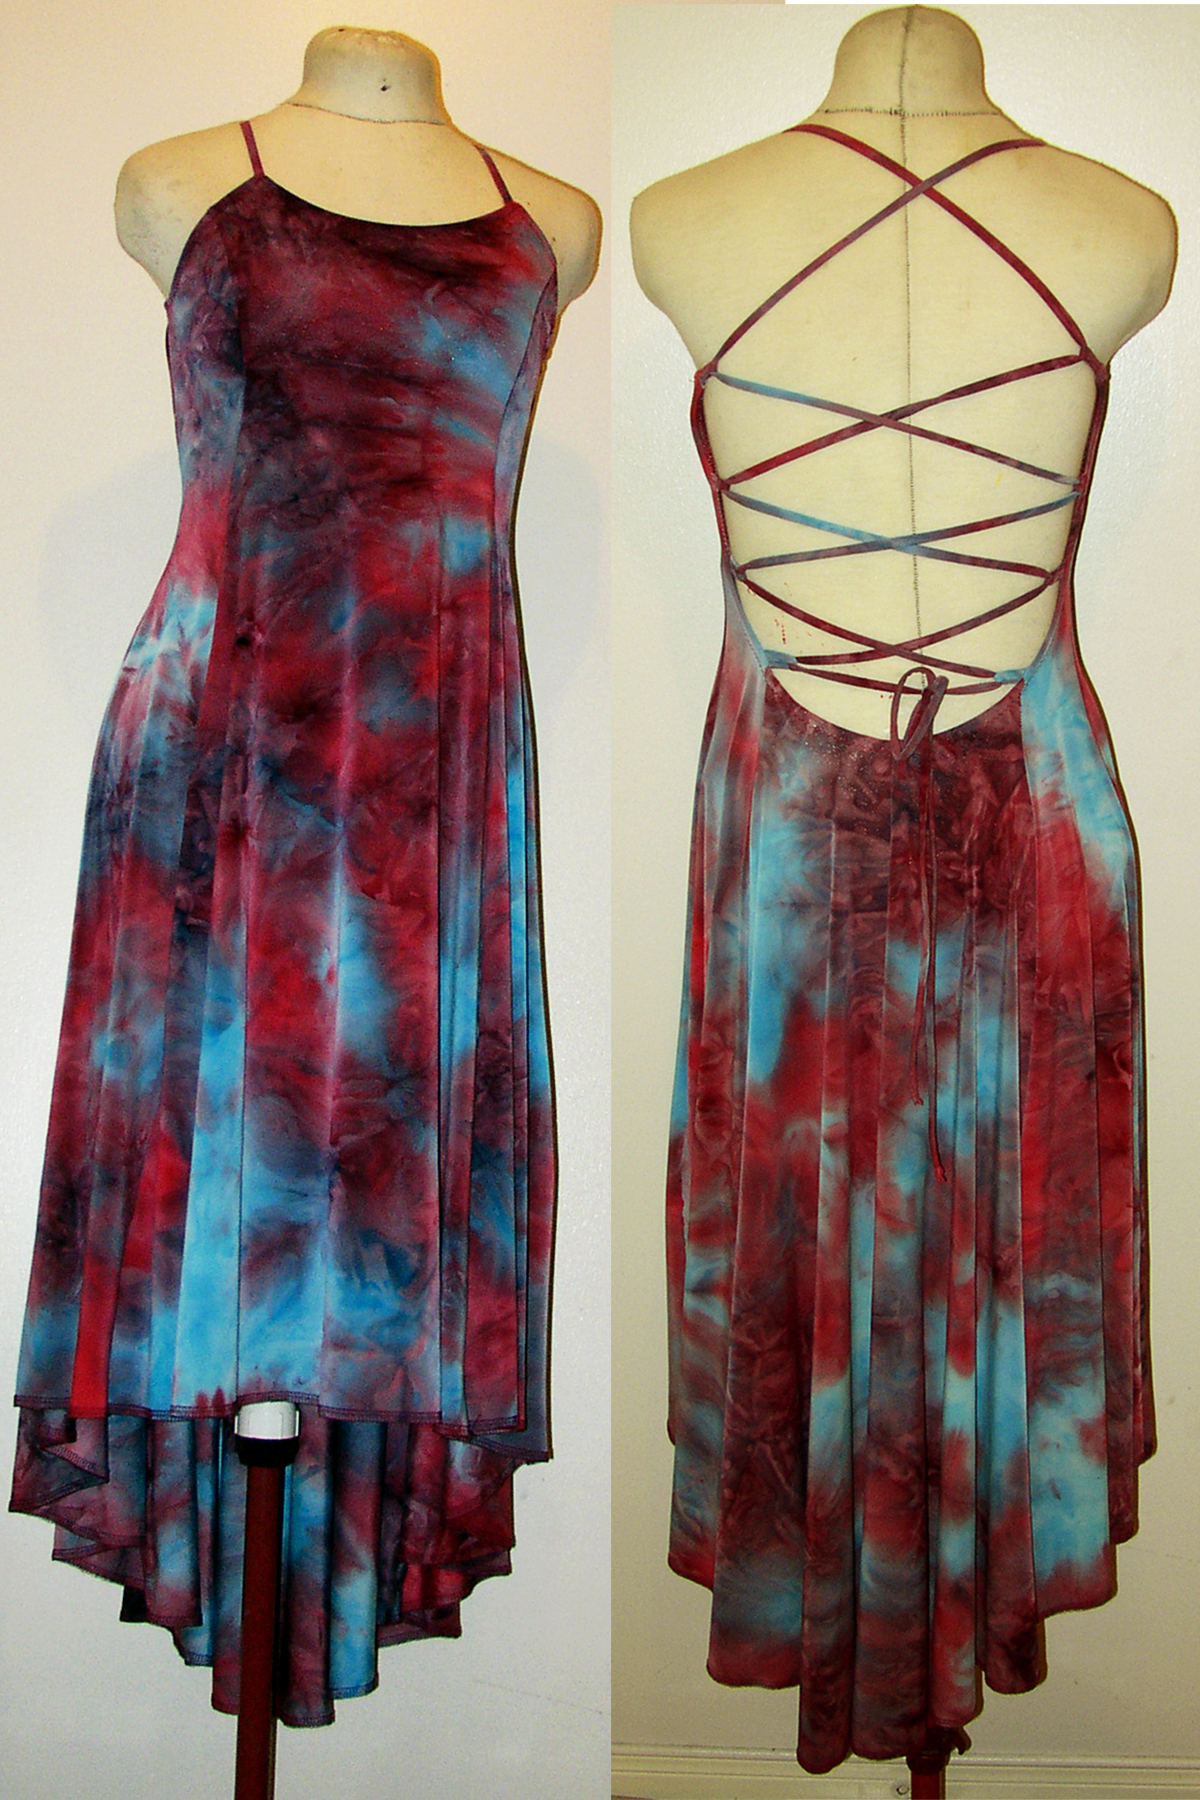 A long red and blue tie dyed dress is displayed on a beige dress form.